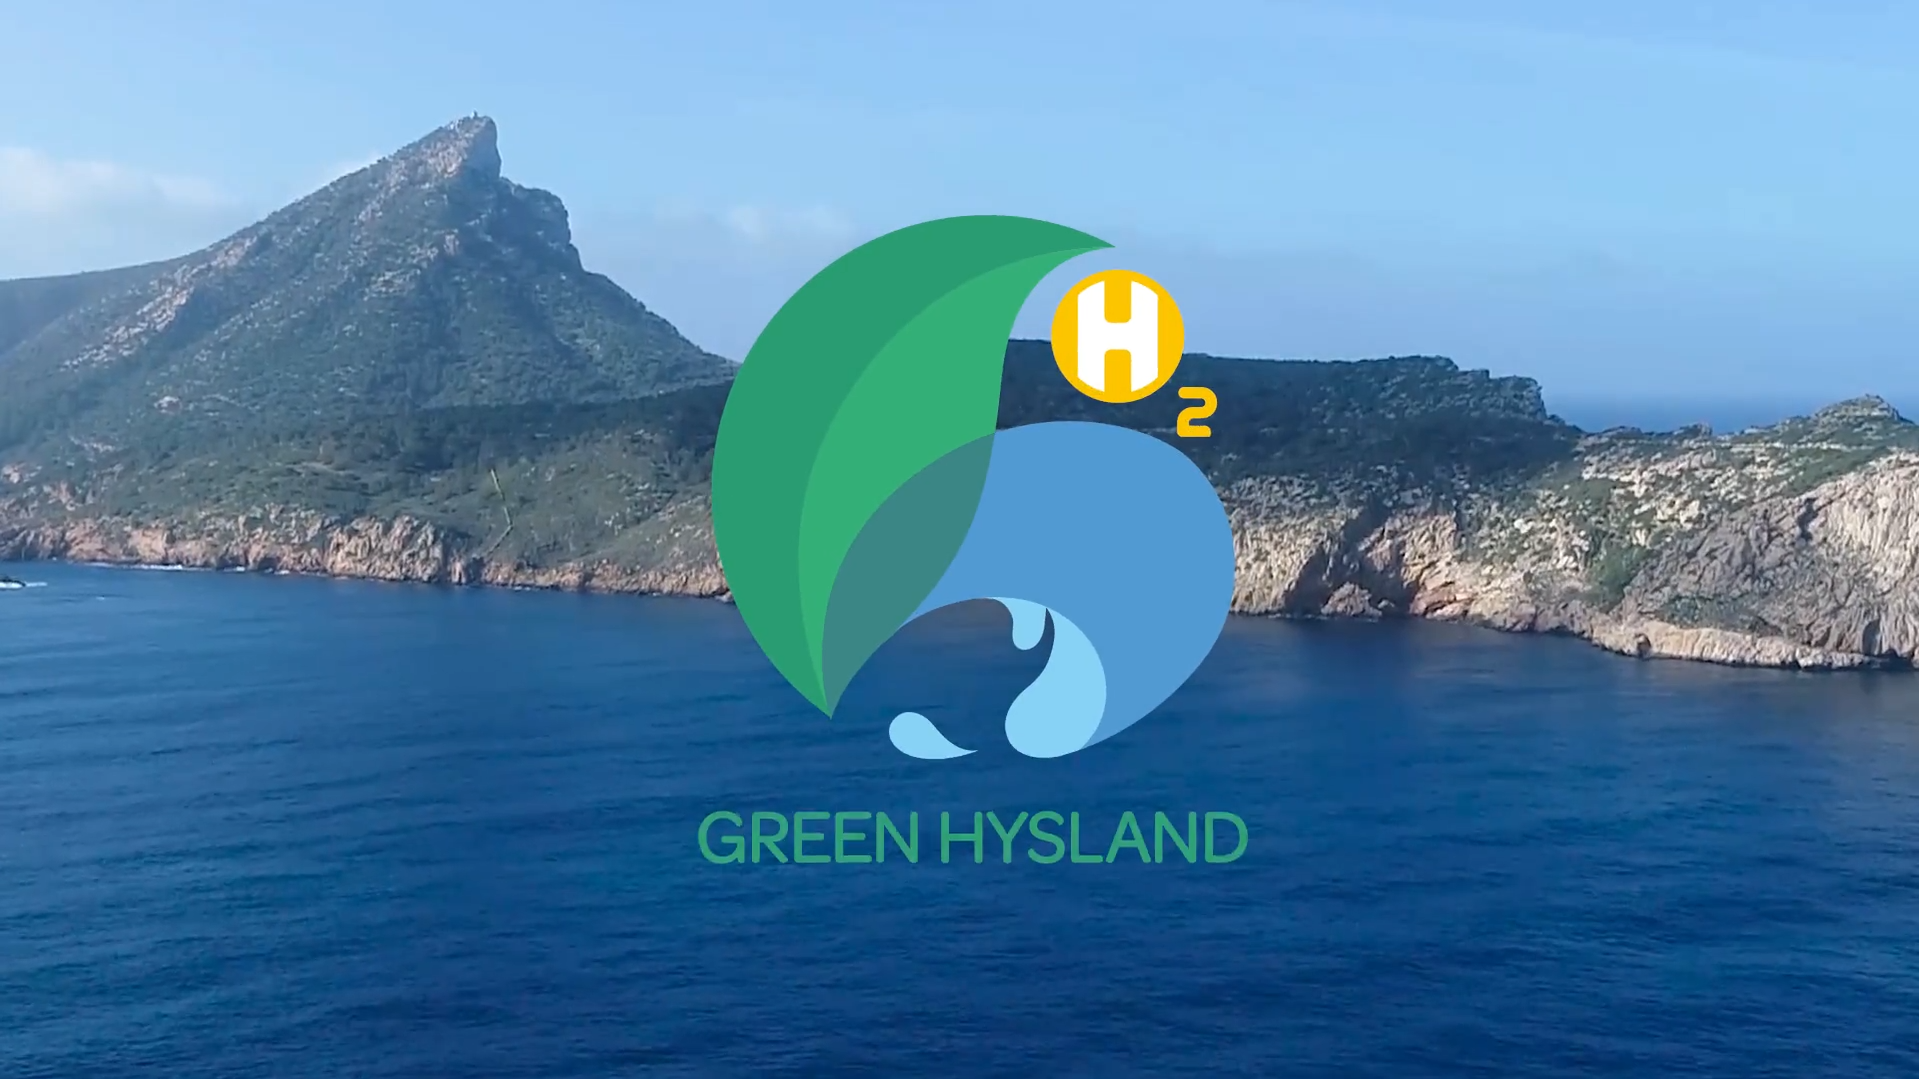 Discover Green Hysland in video